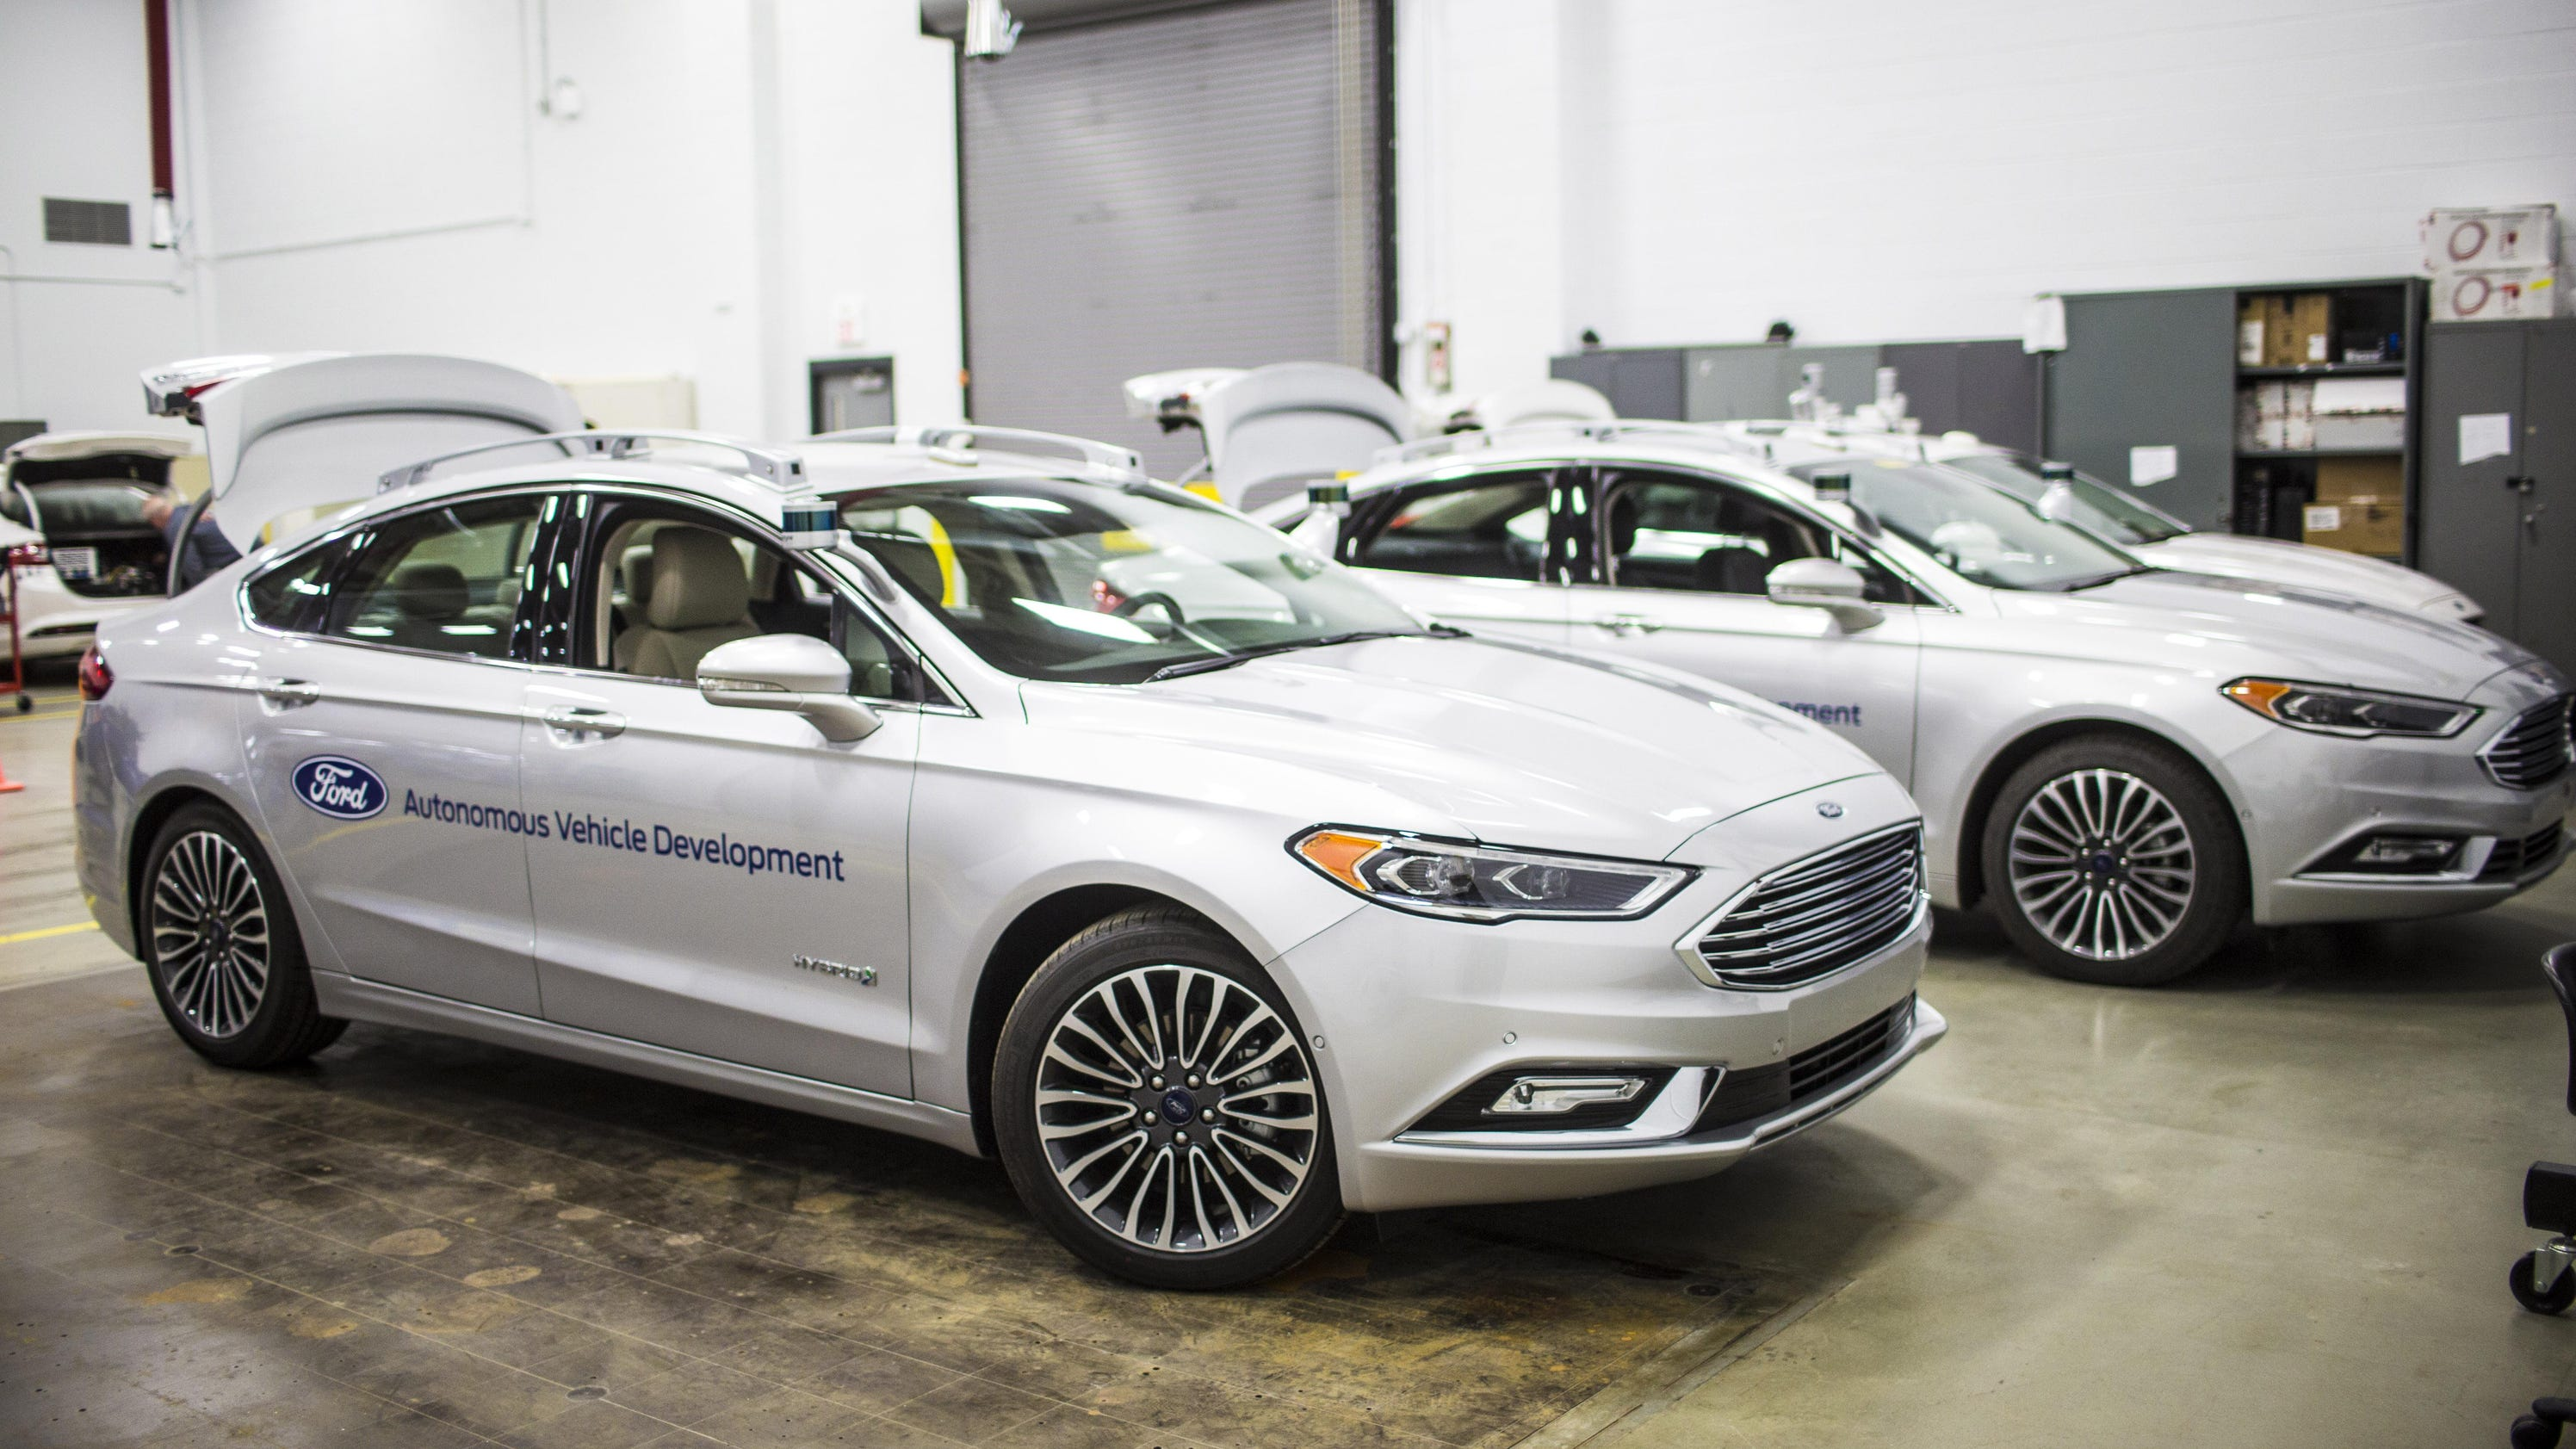 Ford to triple size of autonomous test fleet in 2017